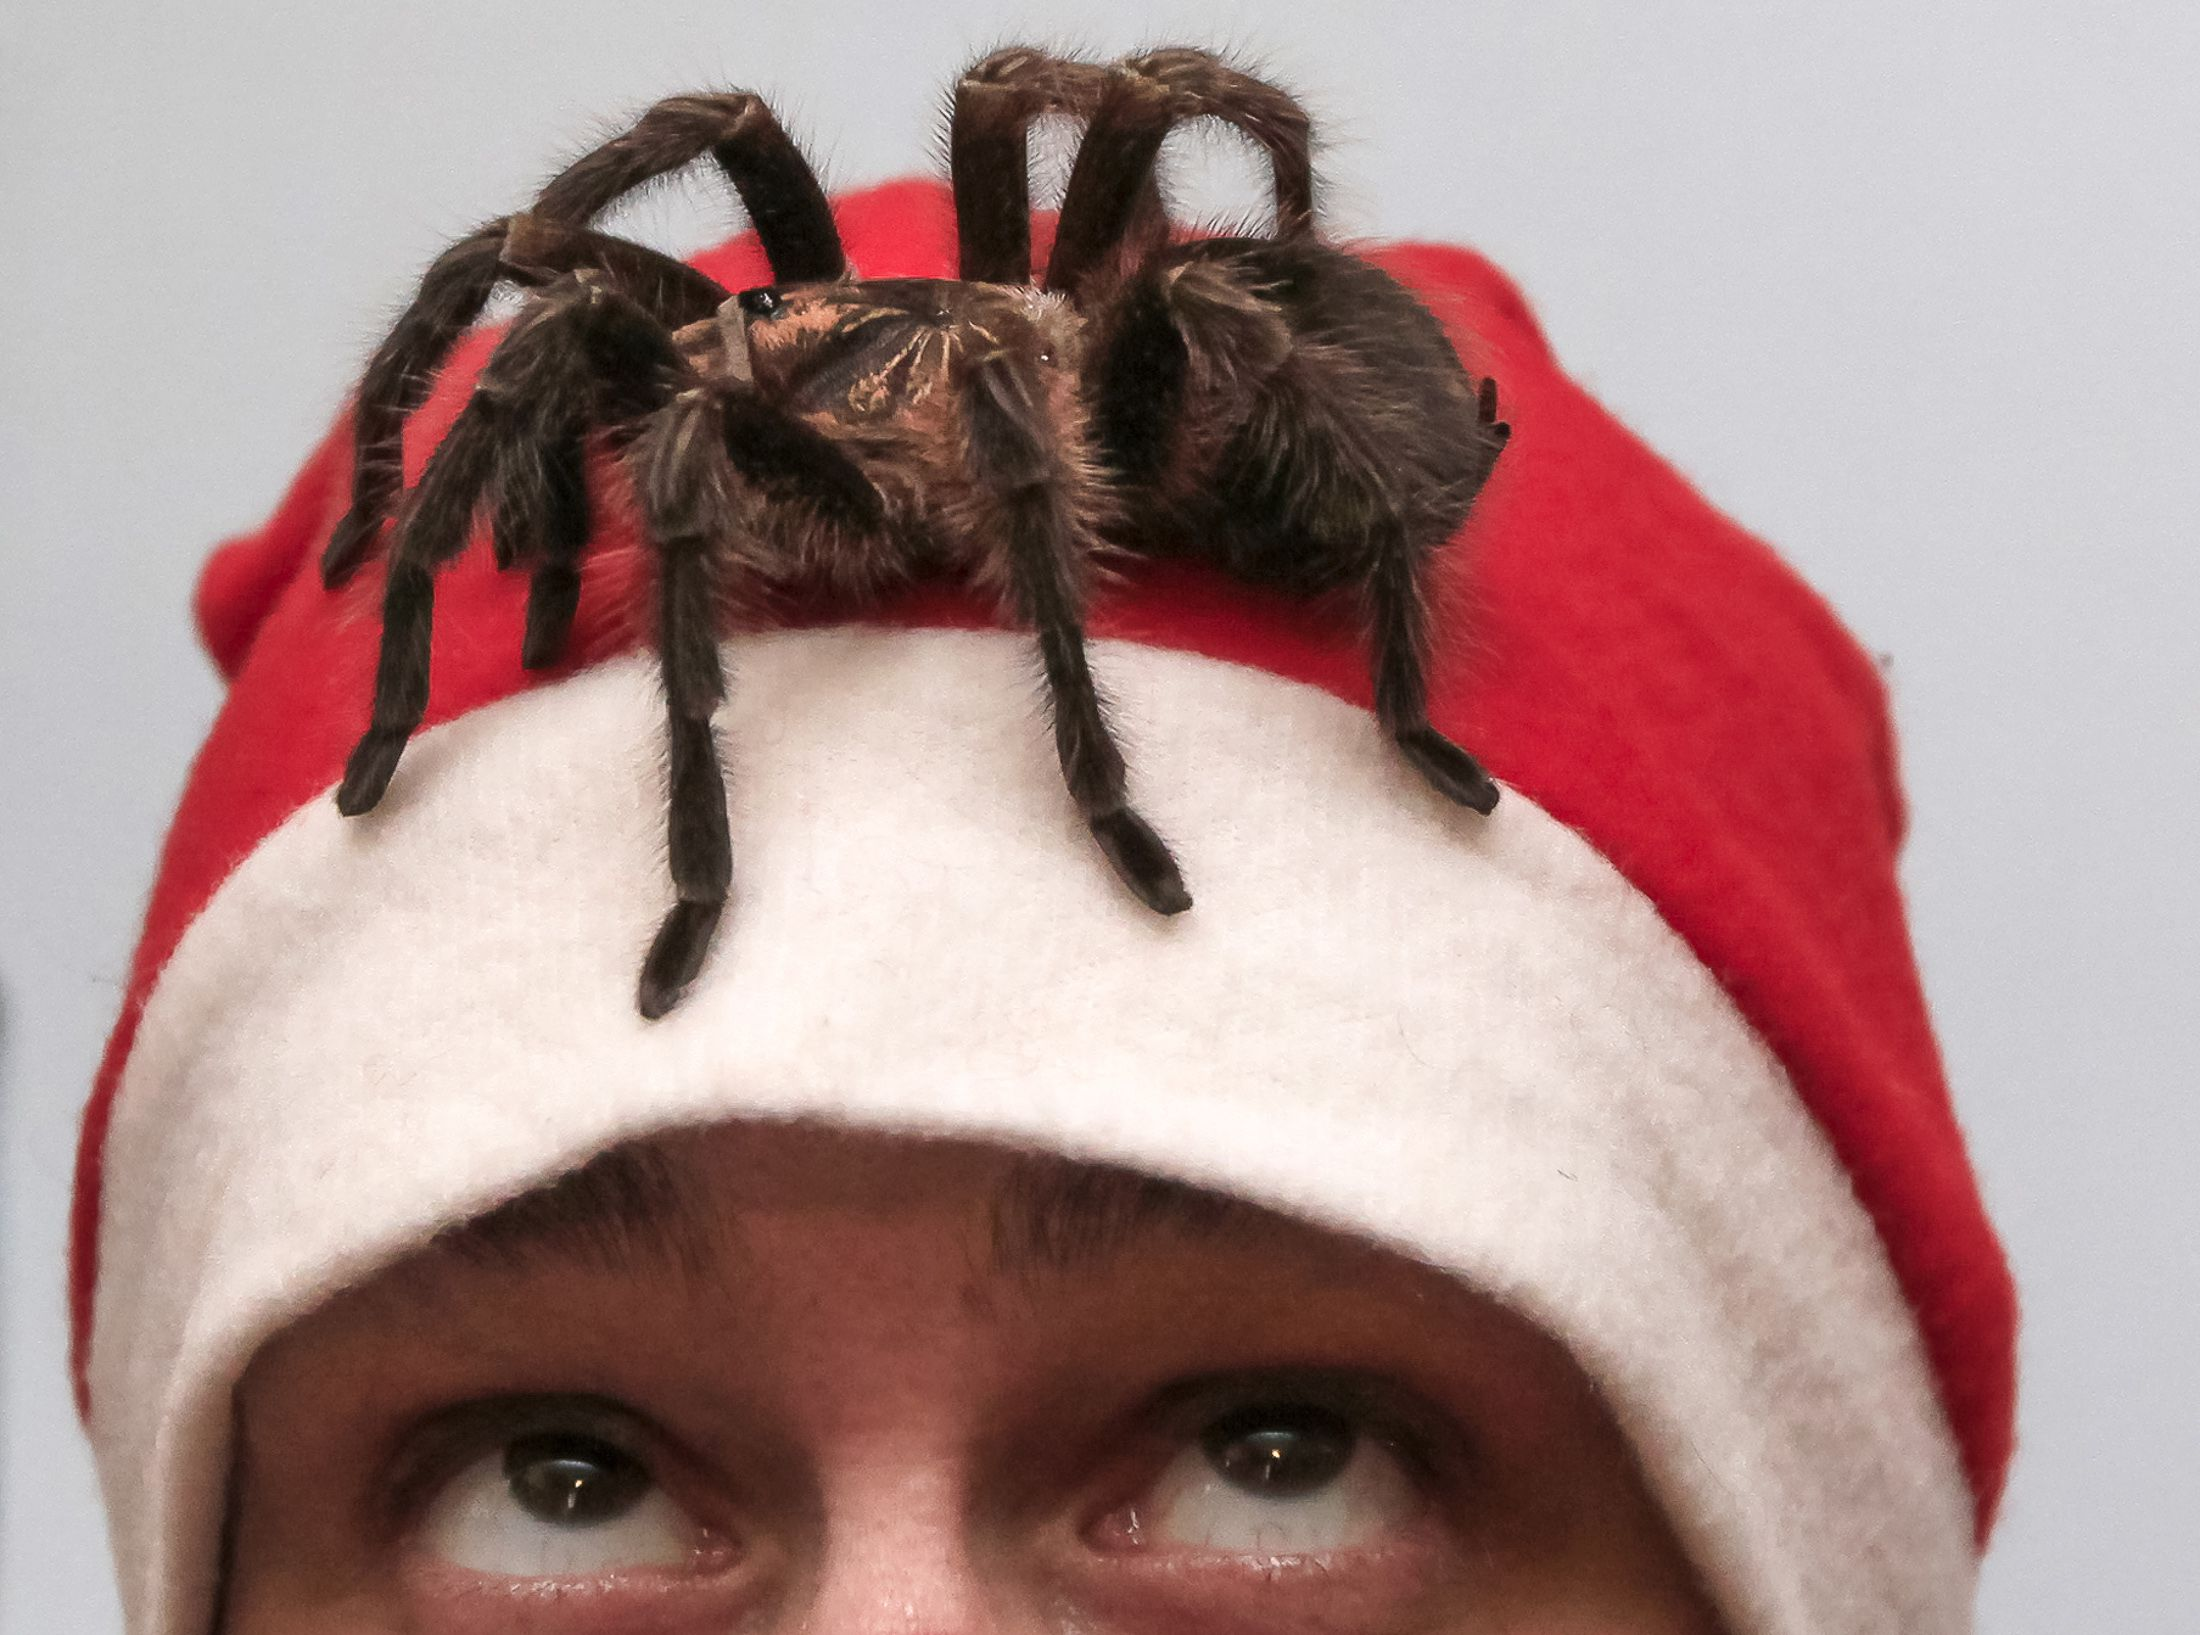 An amateur spider keeper, Yegor Konkin, 24, dressed as Santa Claus, watches a venomous Phormictopus antillensis spider on his head as he prepares for Christmas and New Year performances at his parents' apartment in the town of Minusinsk, November 29, 2013. Konkin, a hobbyist who has collected spiders for four years, lives in St. Petersburg and in Minusinsk and keeps approximately 50 venomous spiders of various species, which are deadly to humans and animals.  REUTERS/Ilya Naymushin  (RUSSIA - Tags: ANIMALS SOCIETY TPX IMAGES OF THE DAY) - RTX15X49